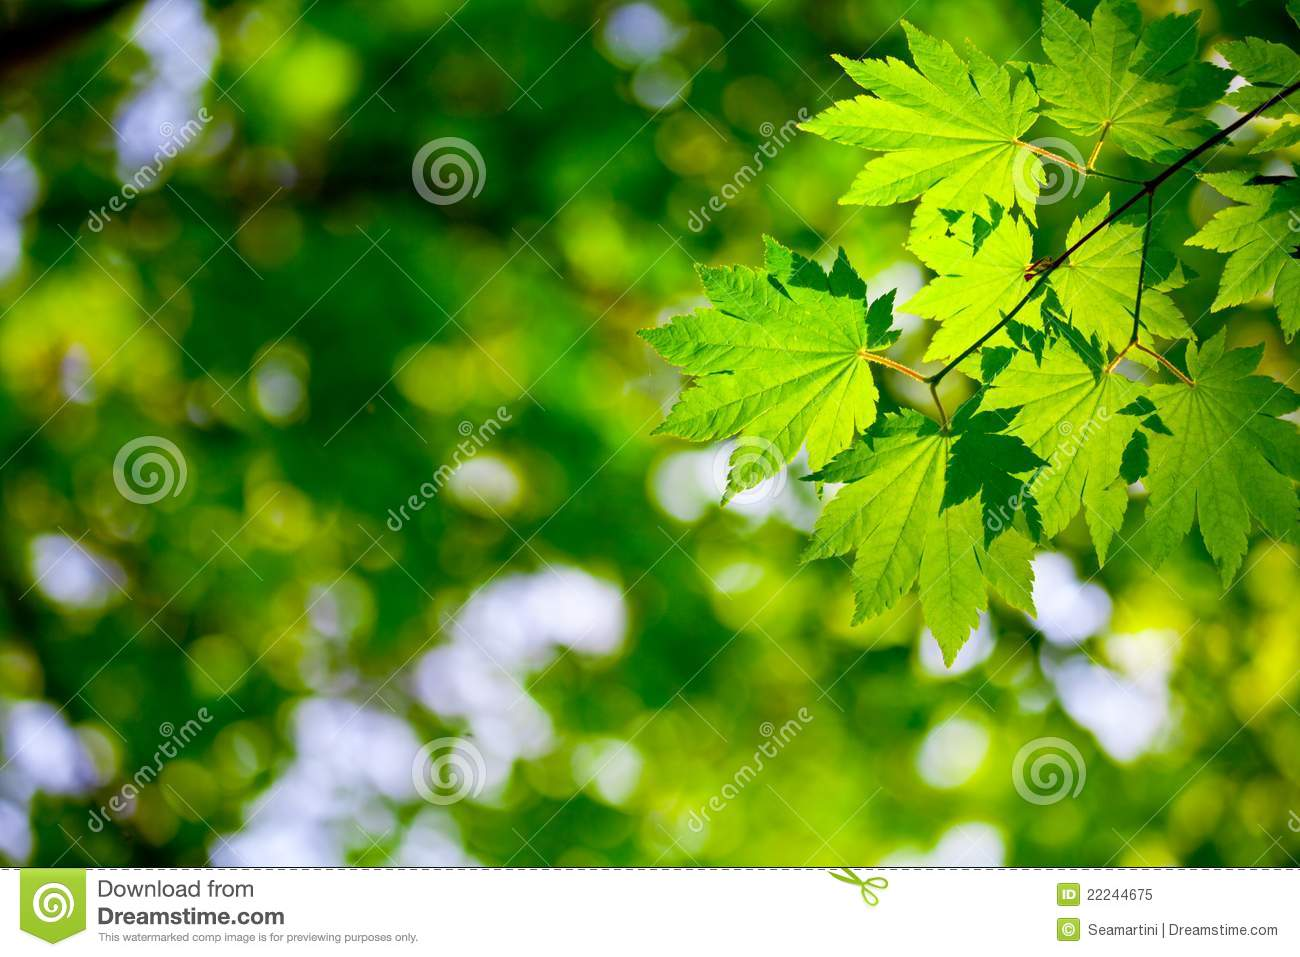 environment background stock image  image of floral